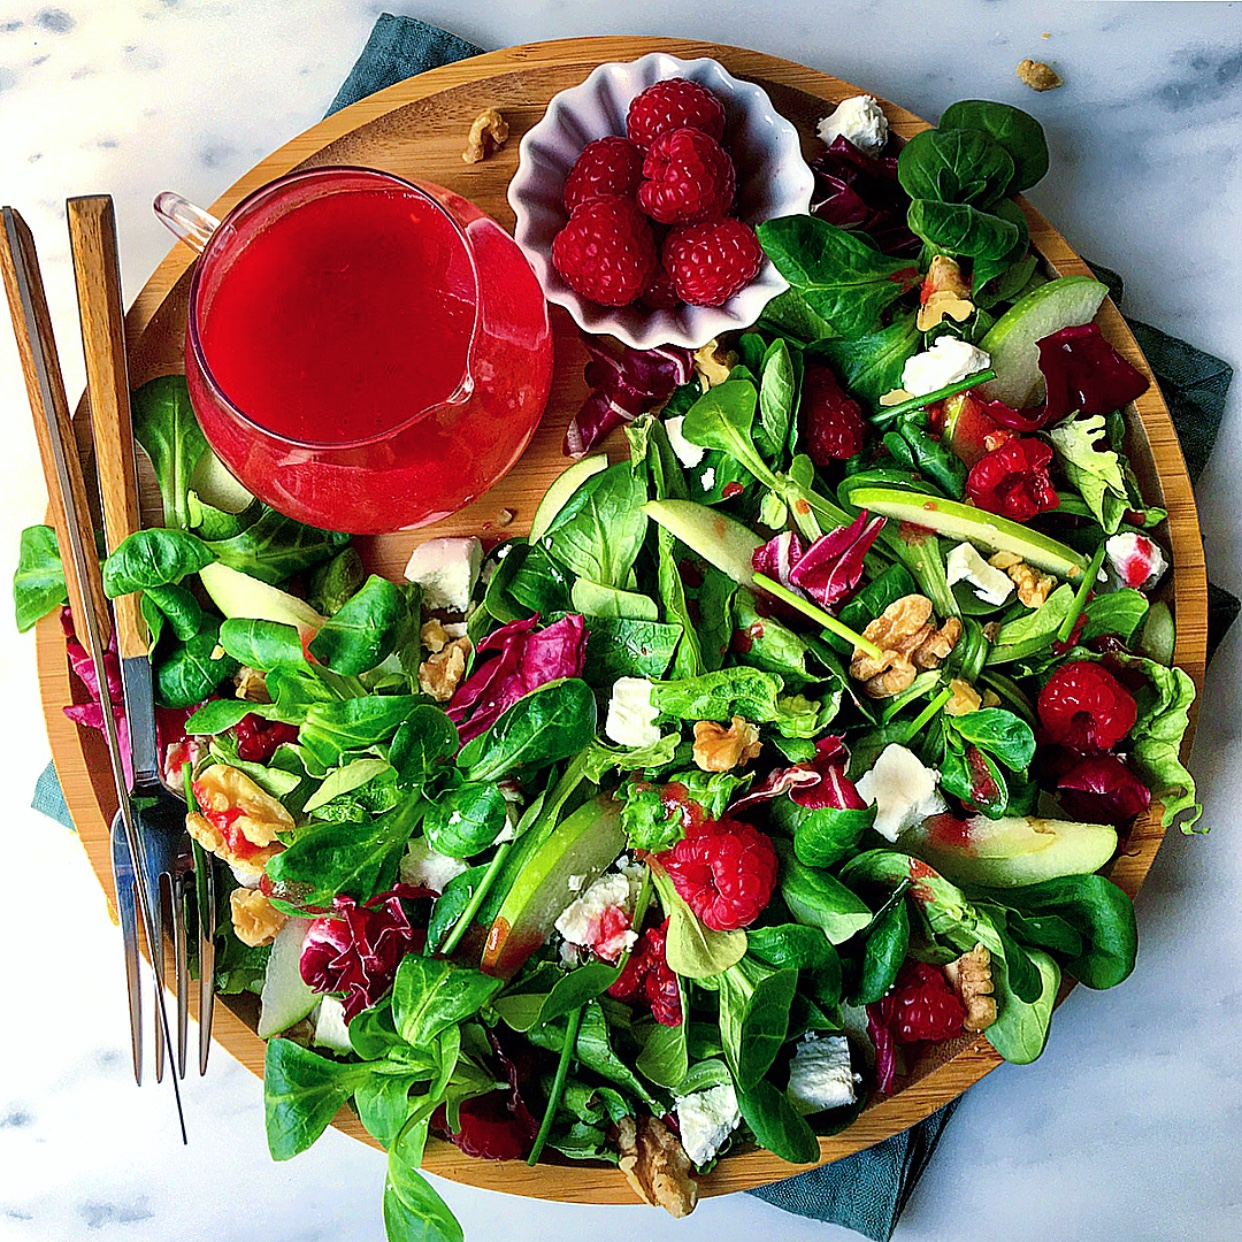 Summer is here so why not add fruits in your salad and dressings!